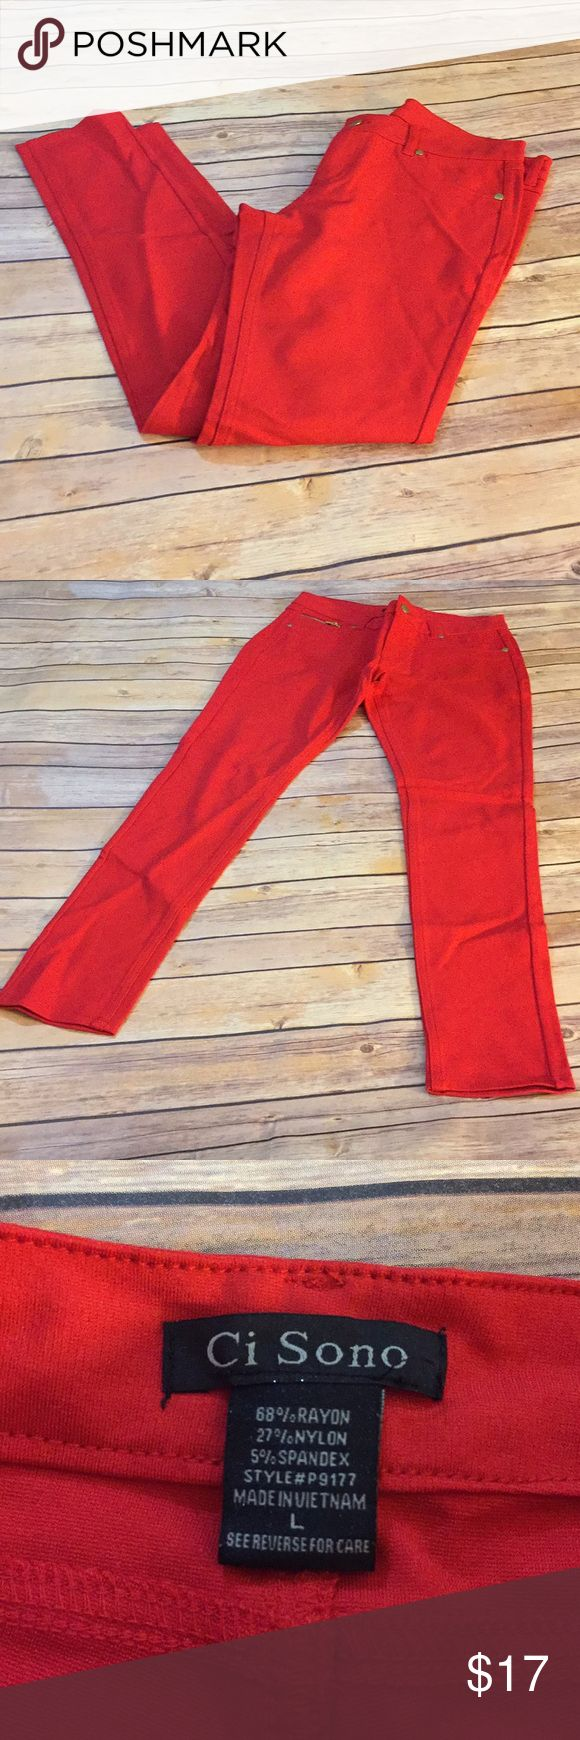 """Chi Sono Red by Cavallini Stretch Skinny Jeans Gorgeous condition. Only worn once. No visible flaws. Stretch skinny jeans.  Length: 37"""" Inseam: 27.5"""" Waist: 28"""" Rise: 9"""" 👜Submit a bundle for a private offer! 👜.       🚫Smoke free, pet free home. No trades. 🚫 Ci Sono Pants Skinny"""